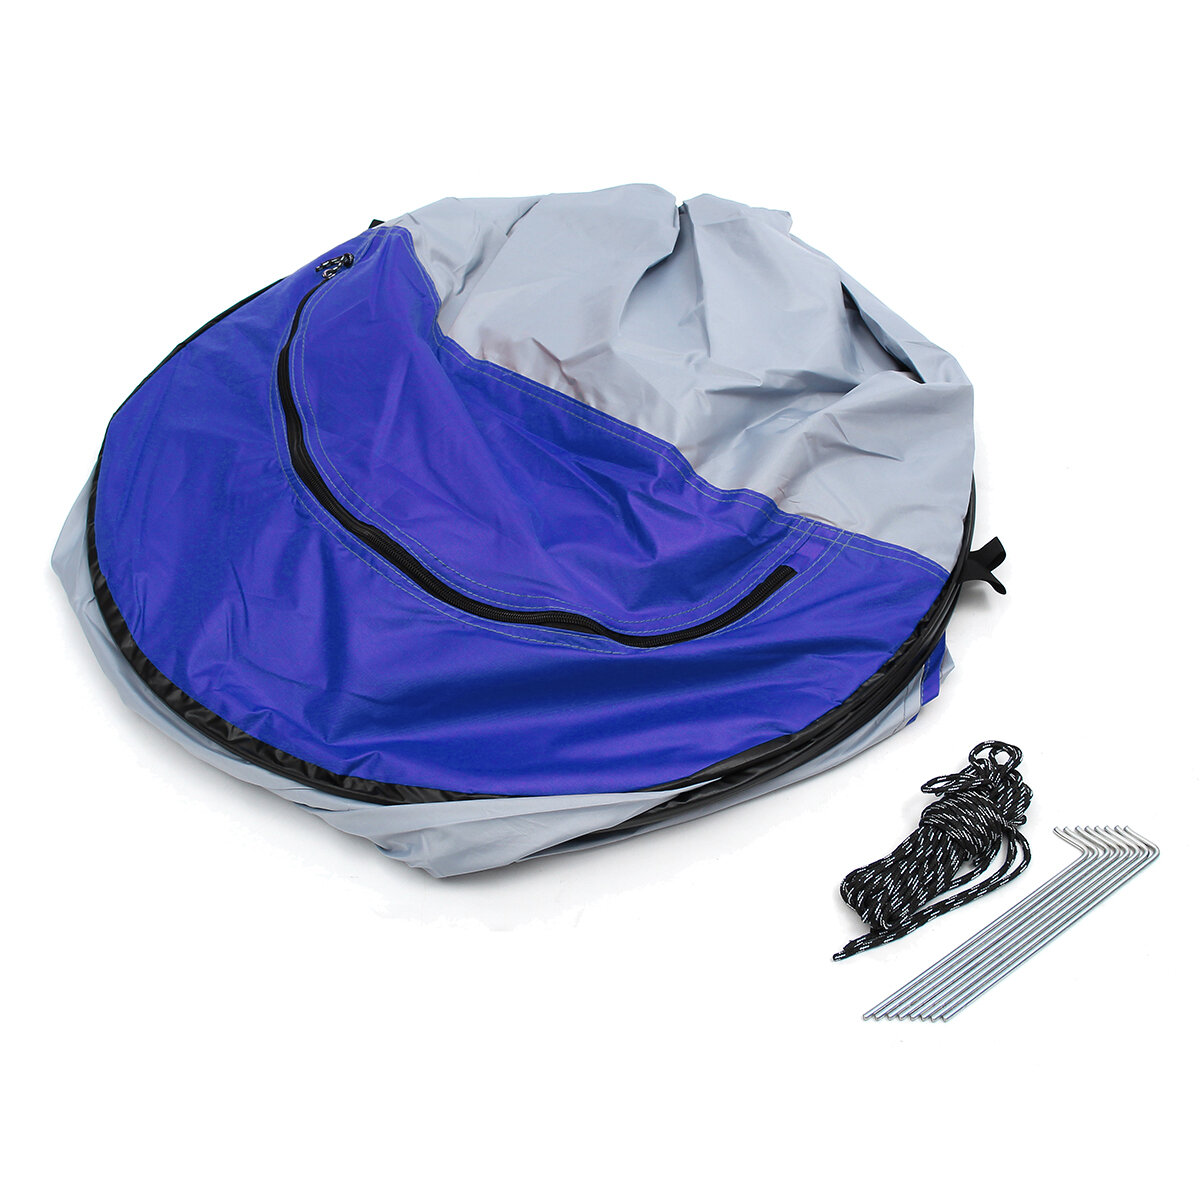 Automatic Speed Open Foldable Single Person Meditation Yoga Bed Tent Outdoor Beach Fishing Outdoor Camping Tent - 10